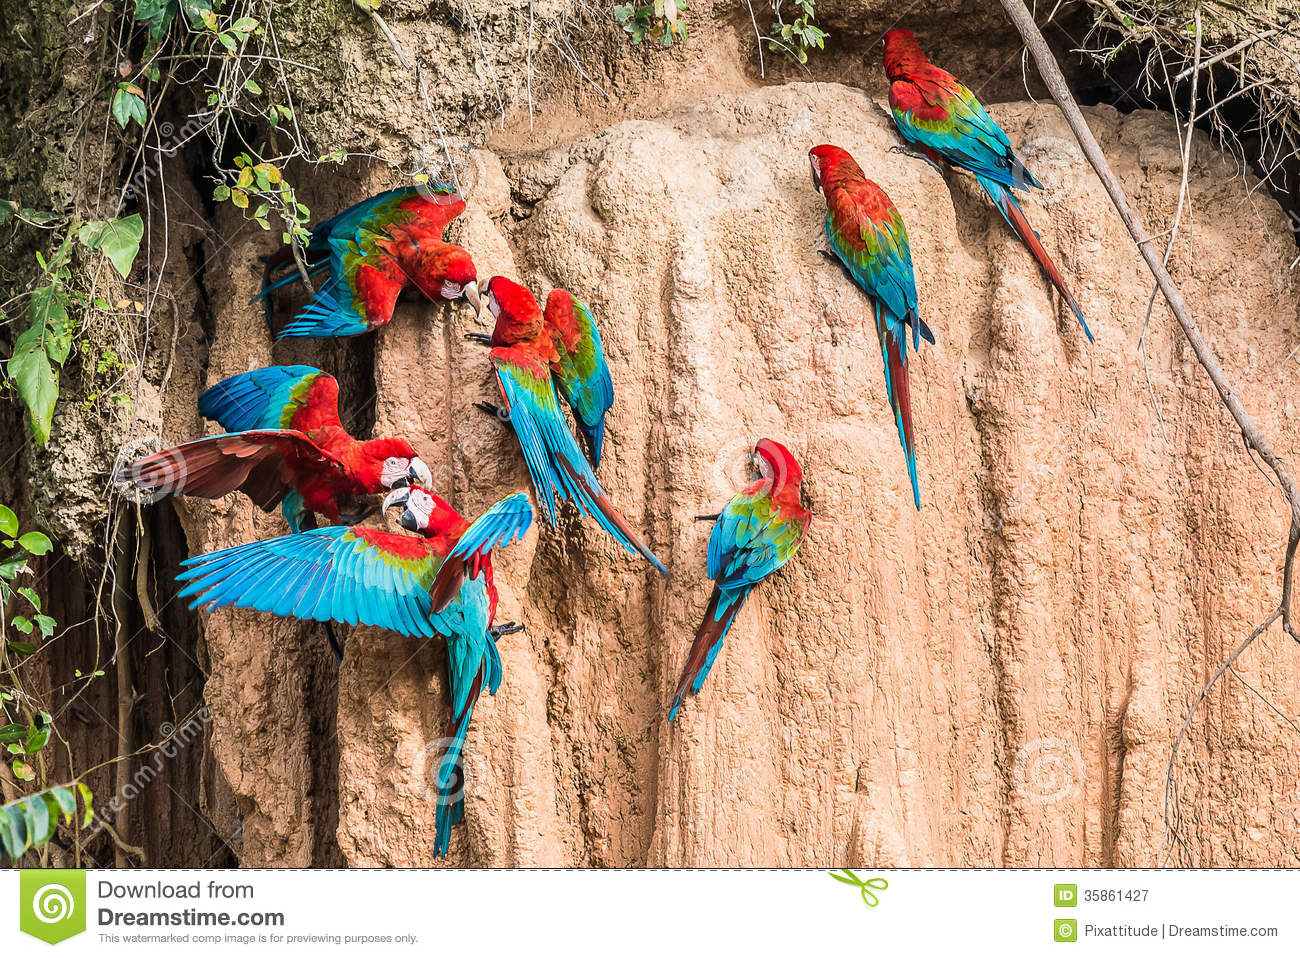 Macaws clay lick peruvian Amazon jungle Madre de Dios Peru